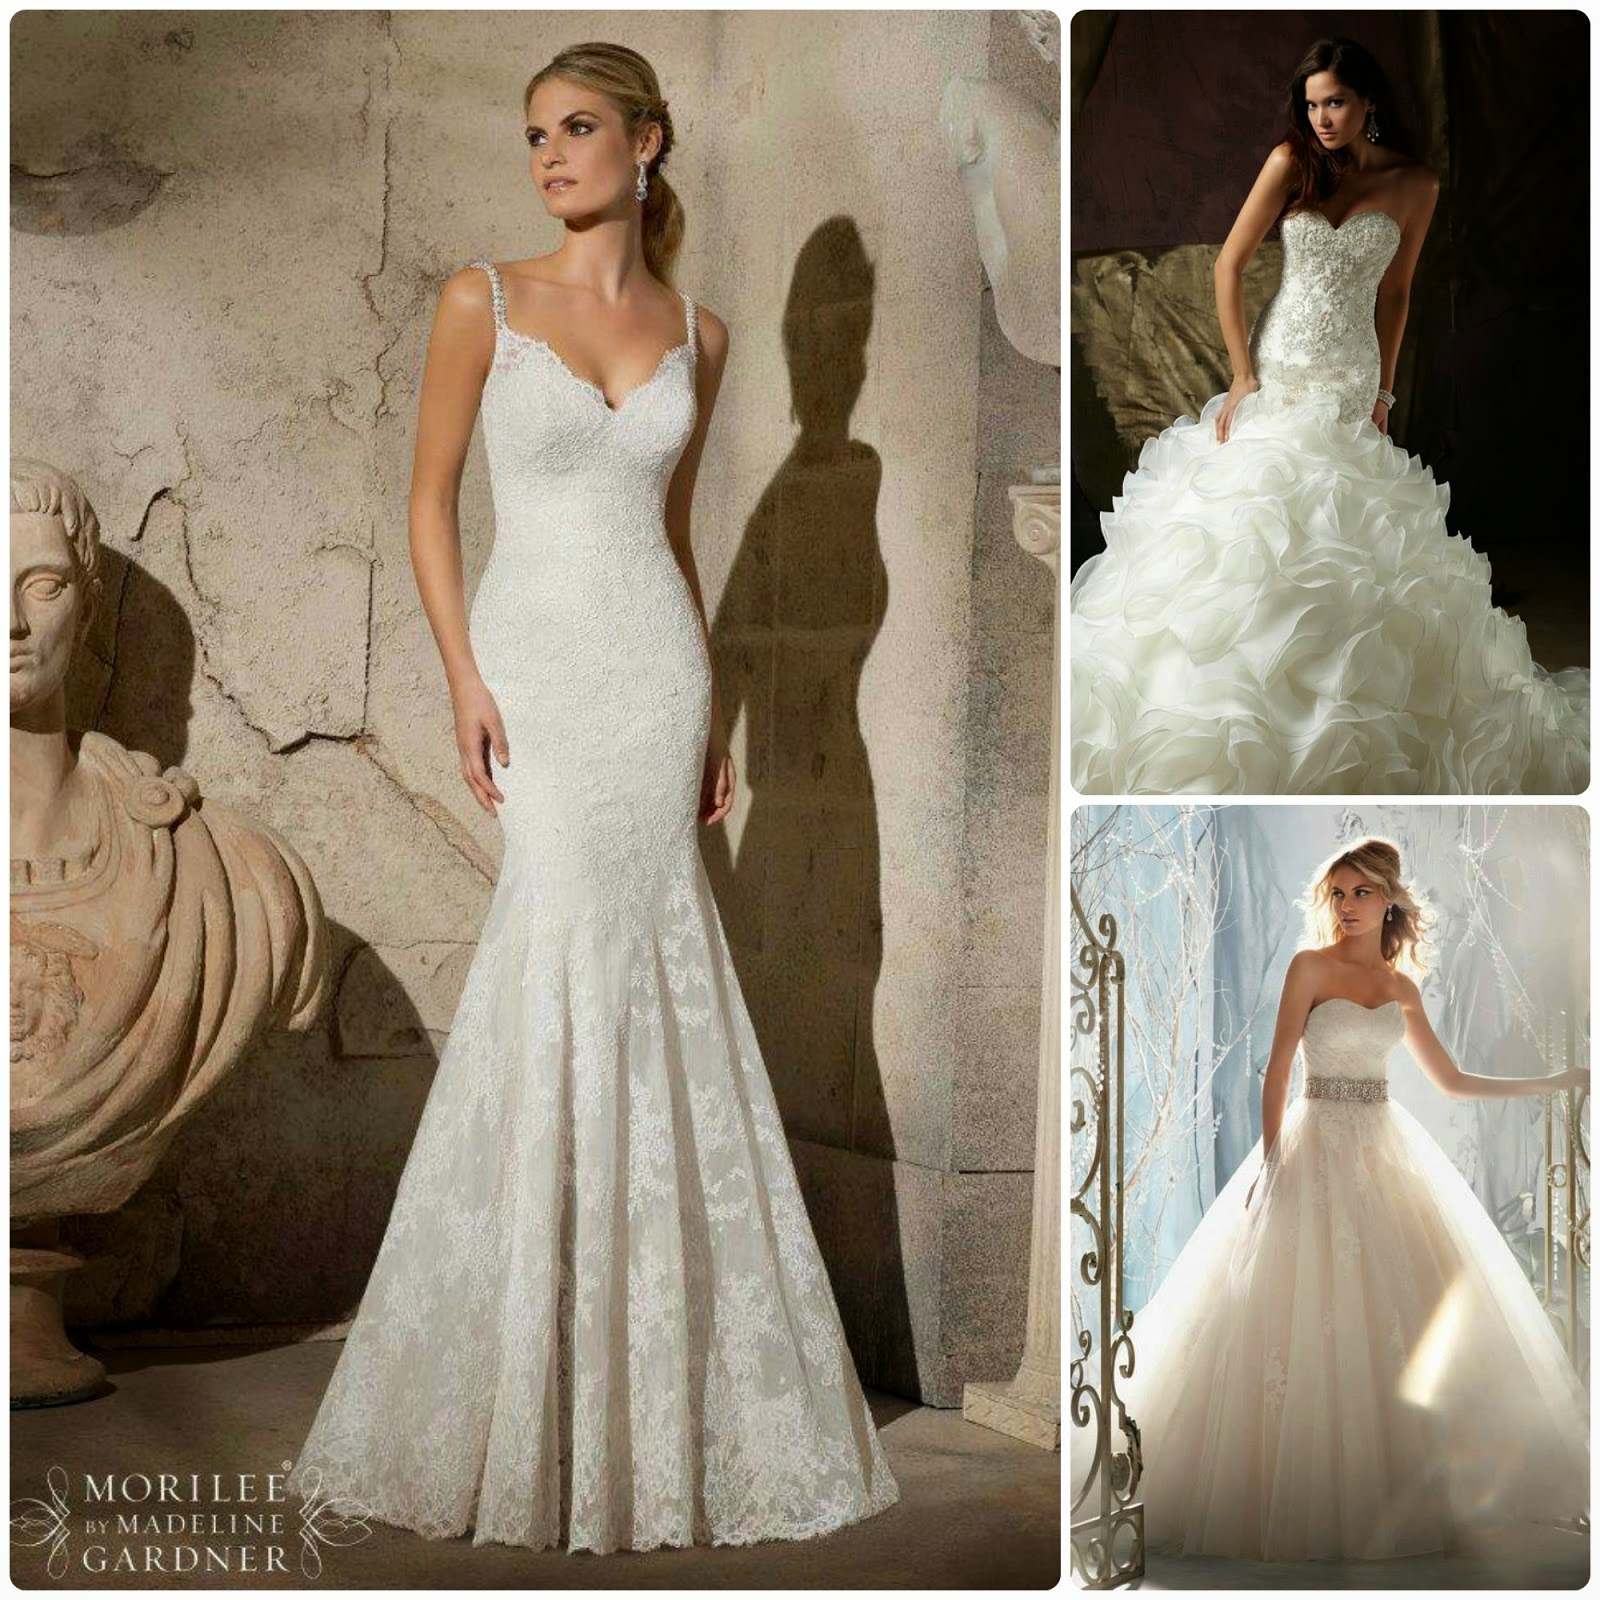 Brides of America Online Store: Welcome to Brides of America's New ...